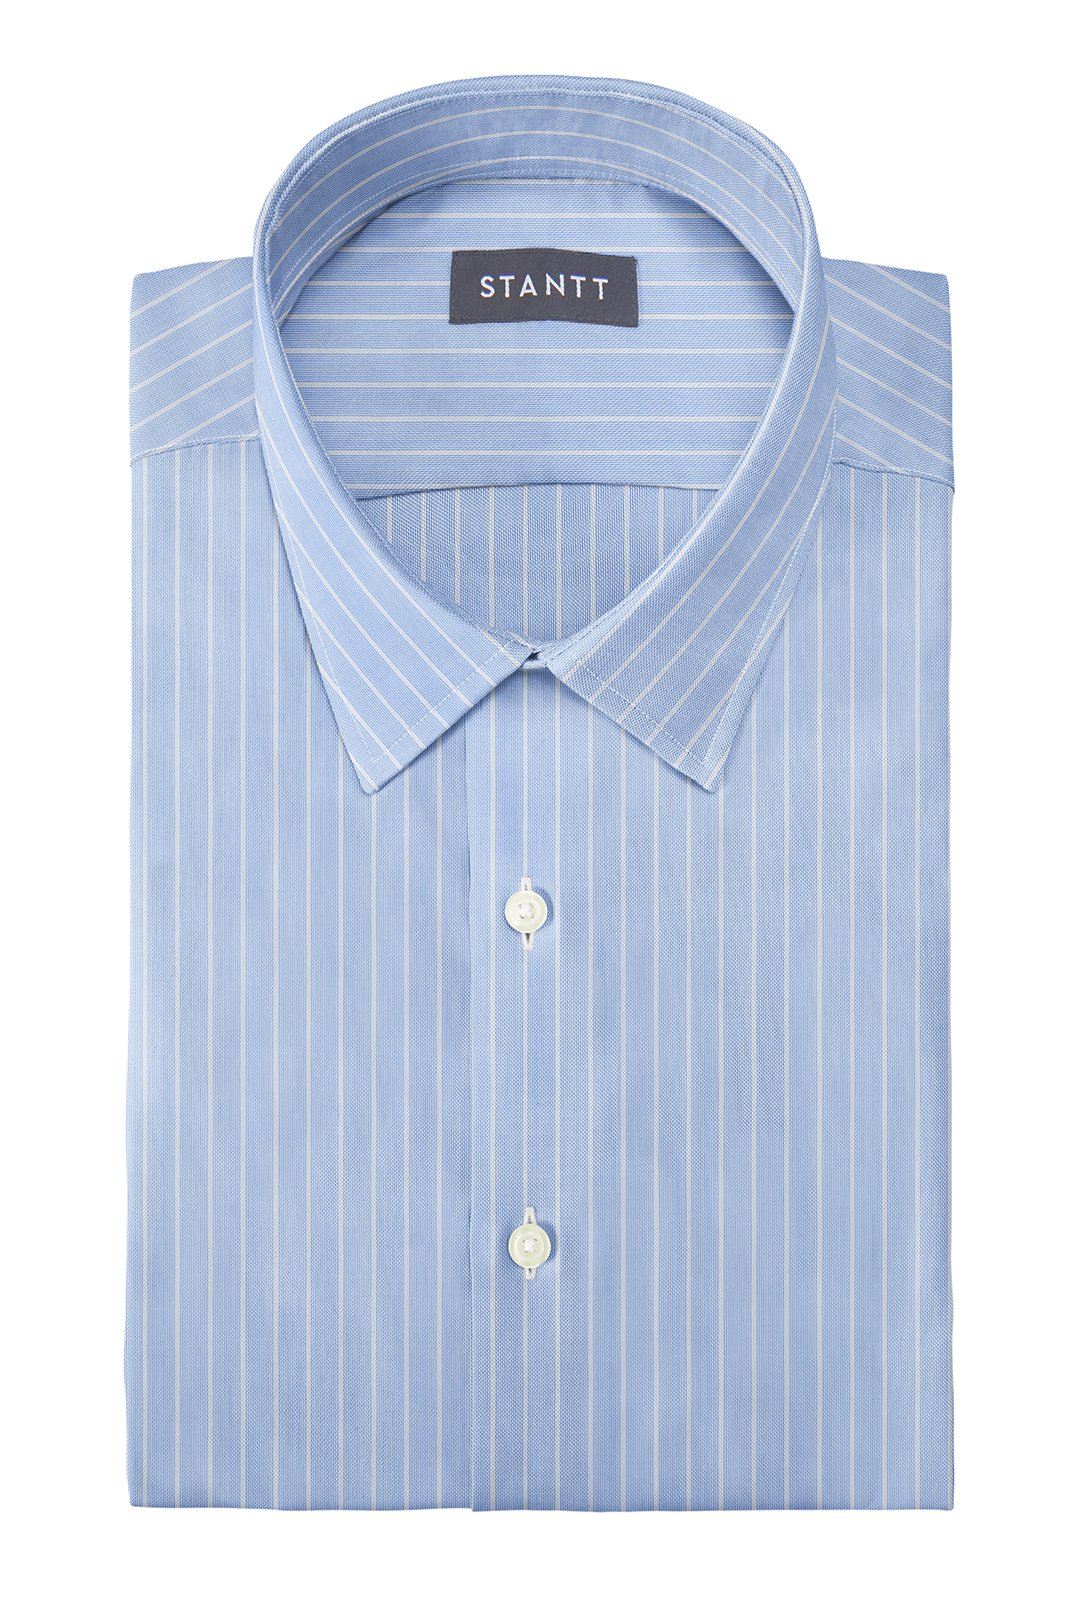 Wrinkle-Resistant Reverse Hairline Stripe: Semi-Spread Collar, French Cuff